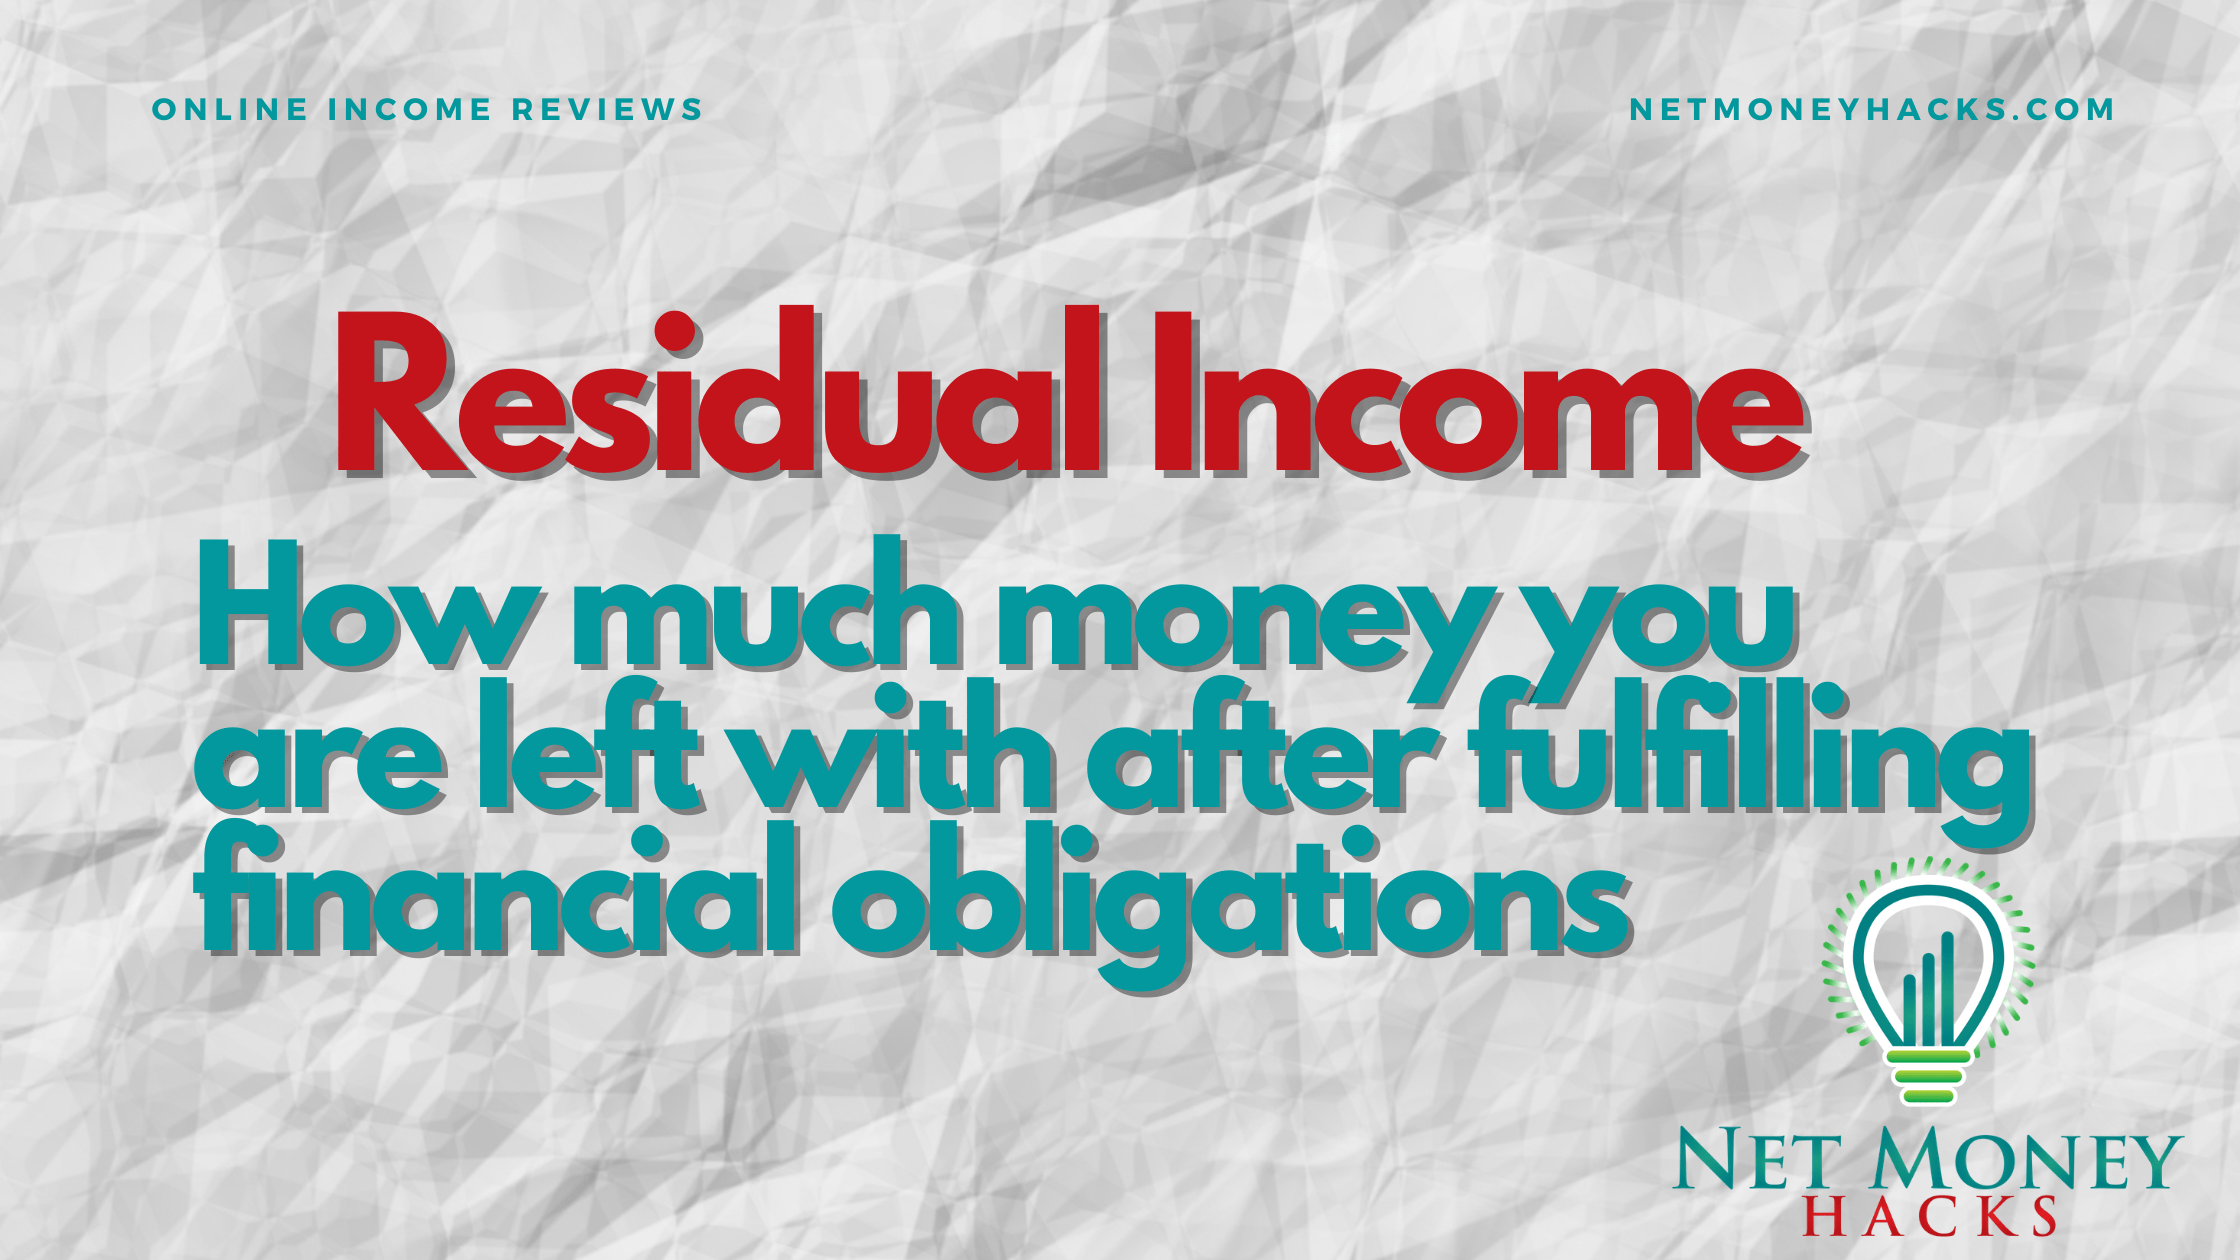 Banner explaining residual income